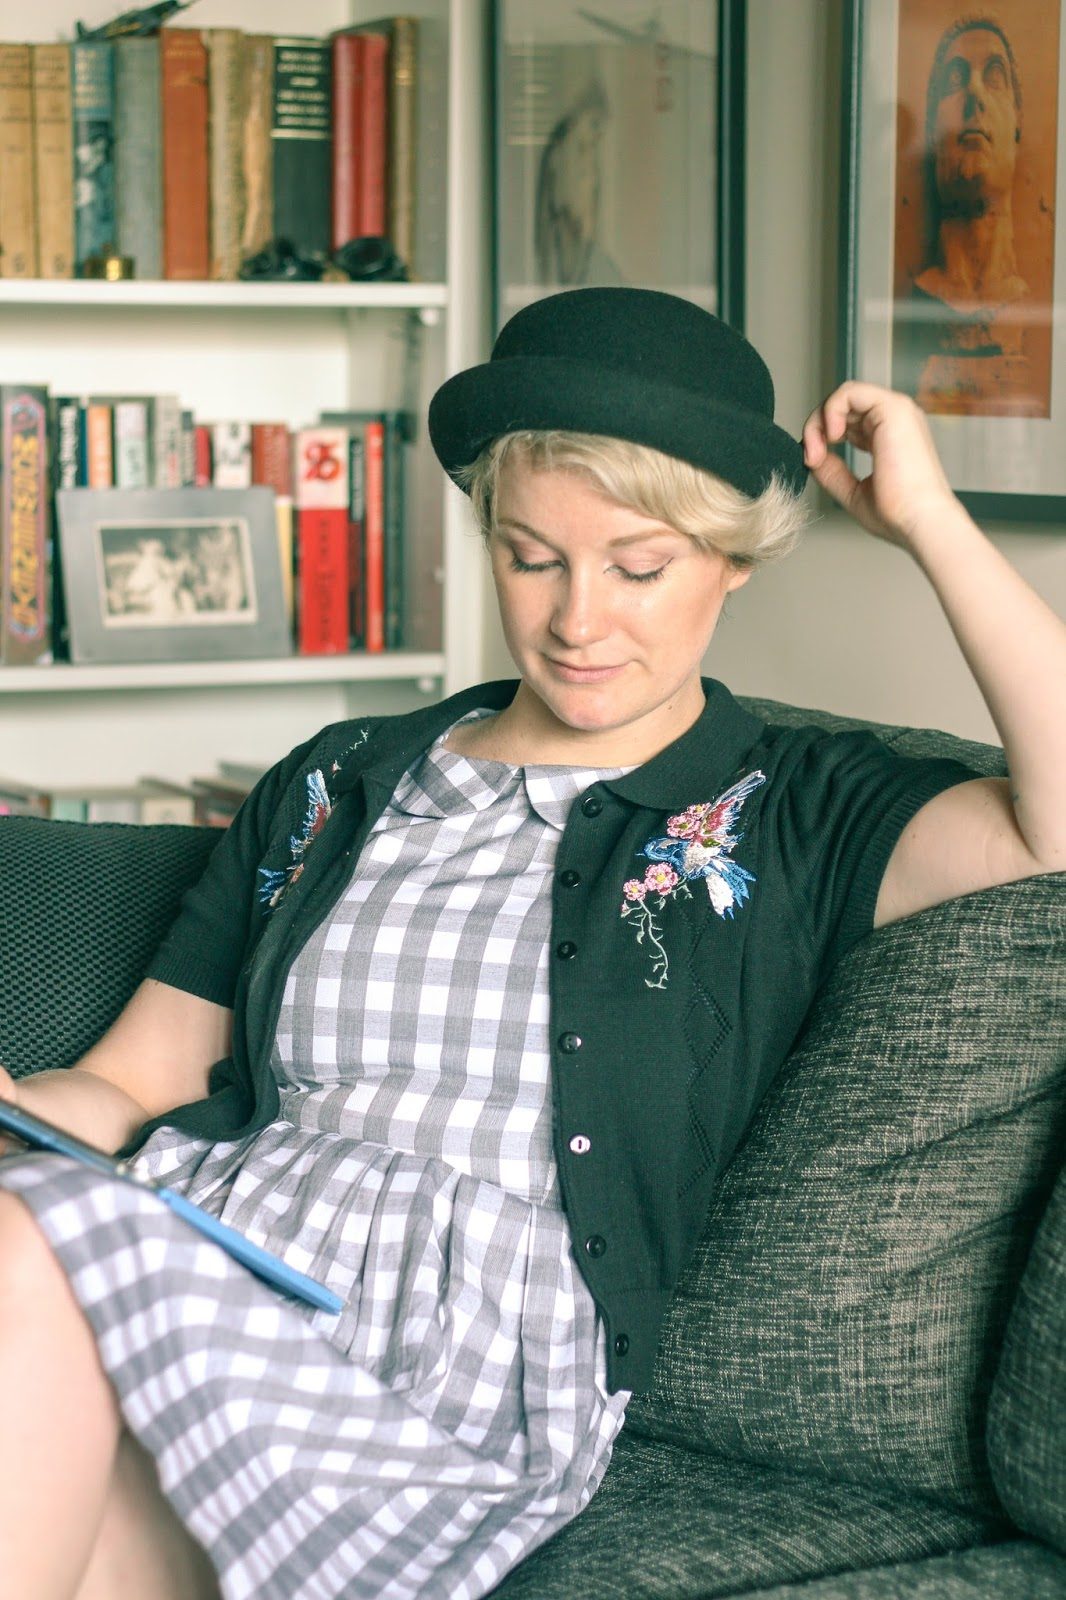 Liana of Finding Femme wears dangerfield gingham dress, princess highway embroidered bird cardigan, naturalizer shoes and black bowler hat.